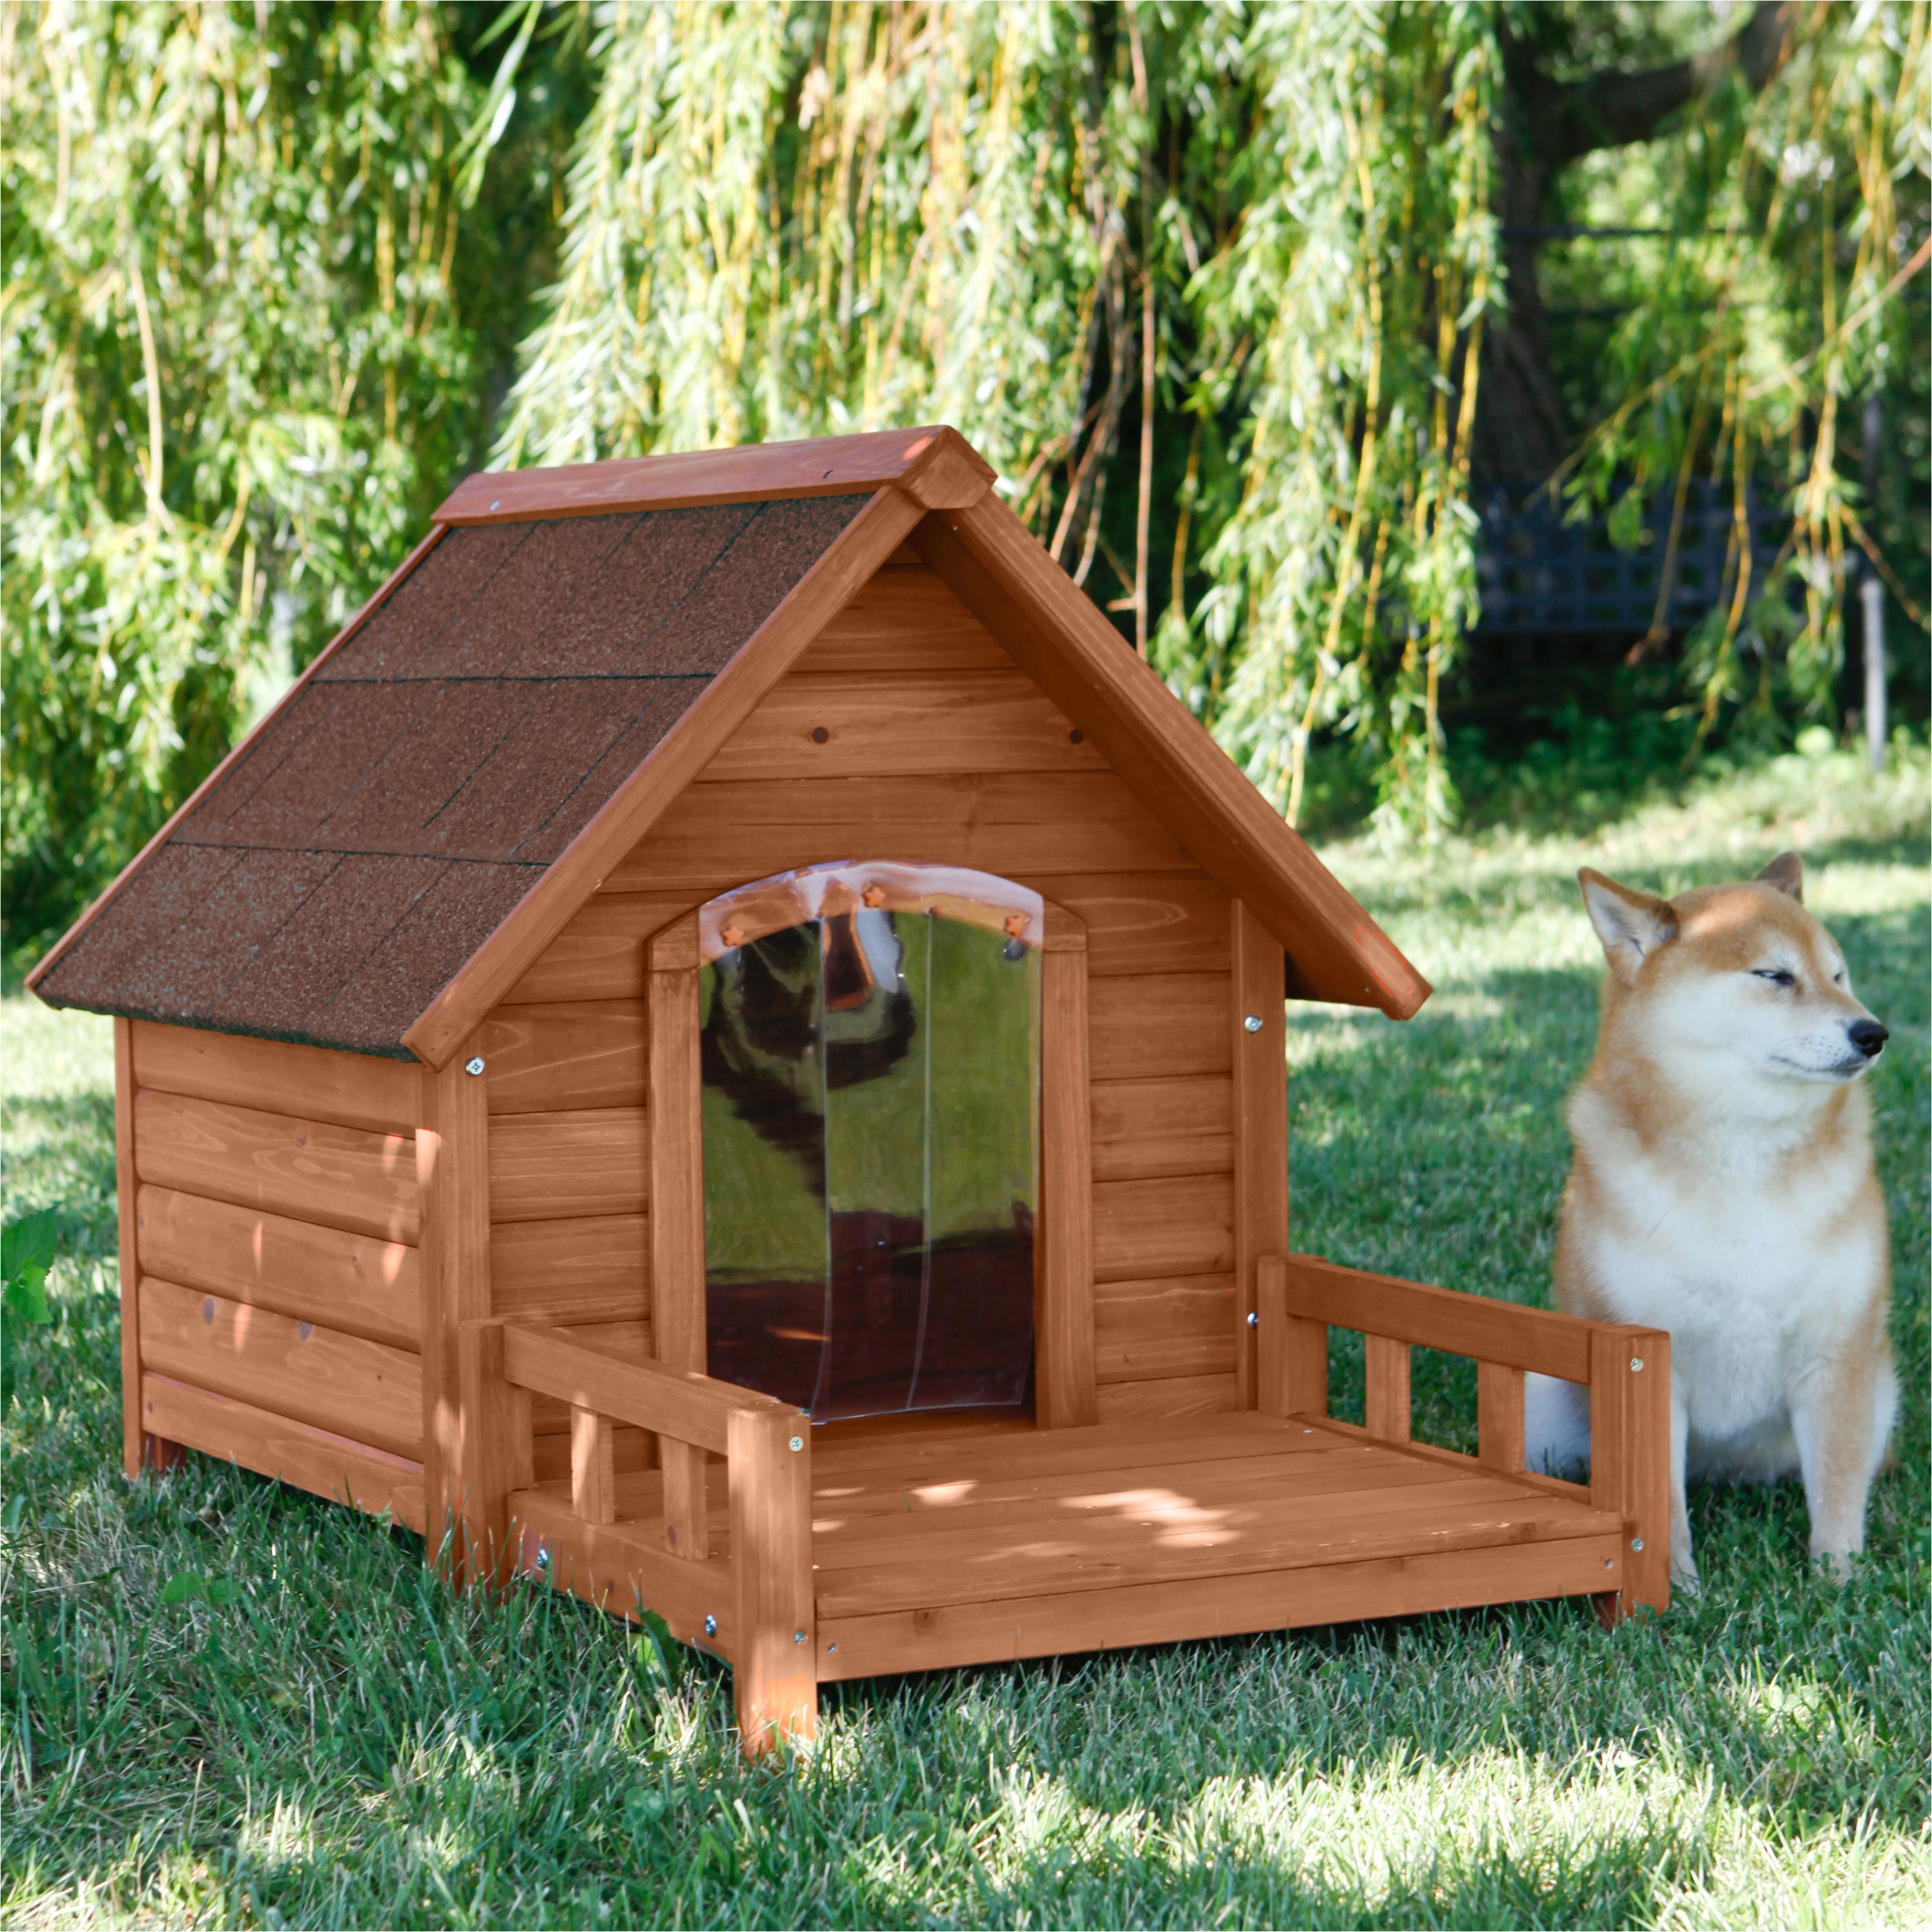 Barn Dog House Plans Luxury Dog House Plans with Well Made Dutch Barn Kennels